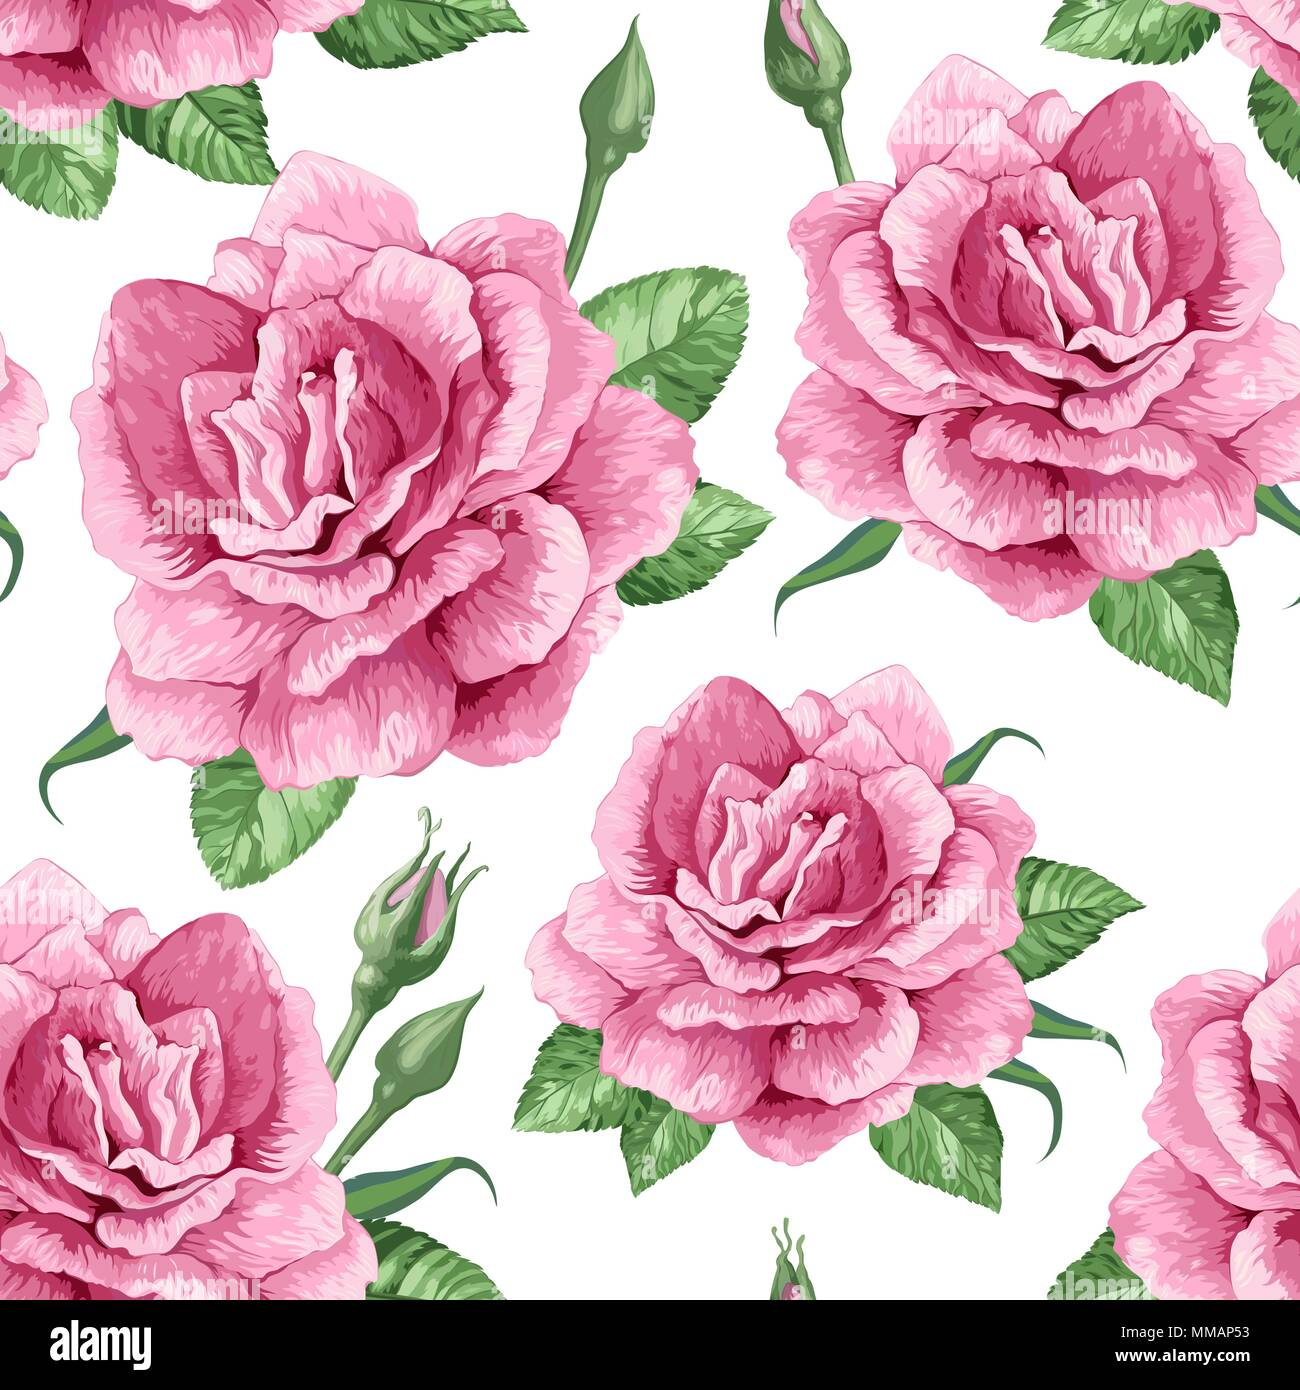 Rose Flowers Petals And Leaves In Watercolor Style On White